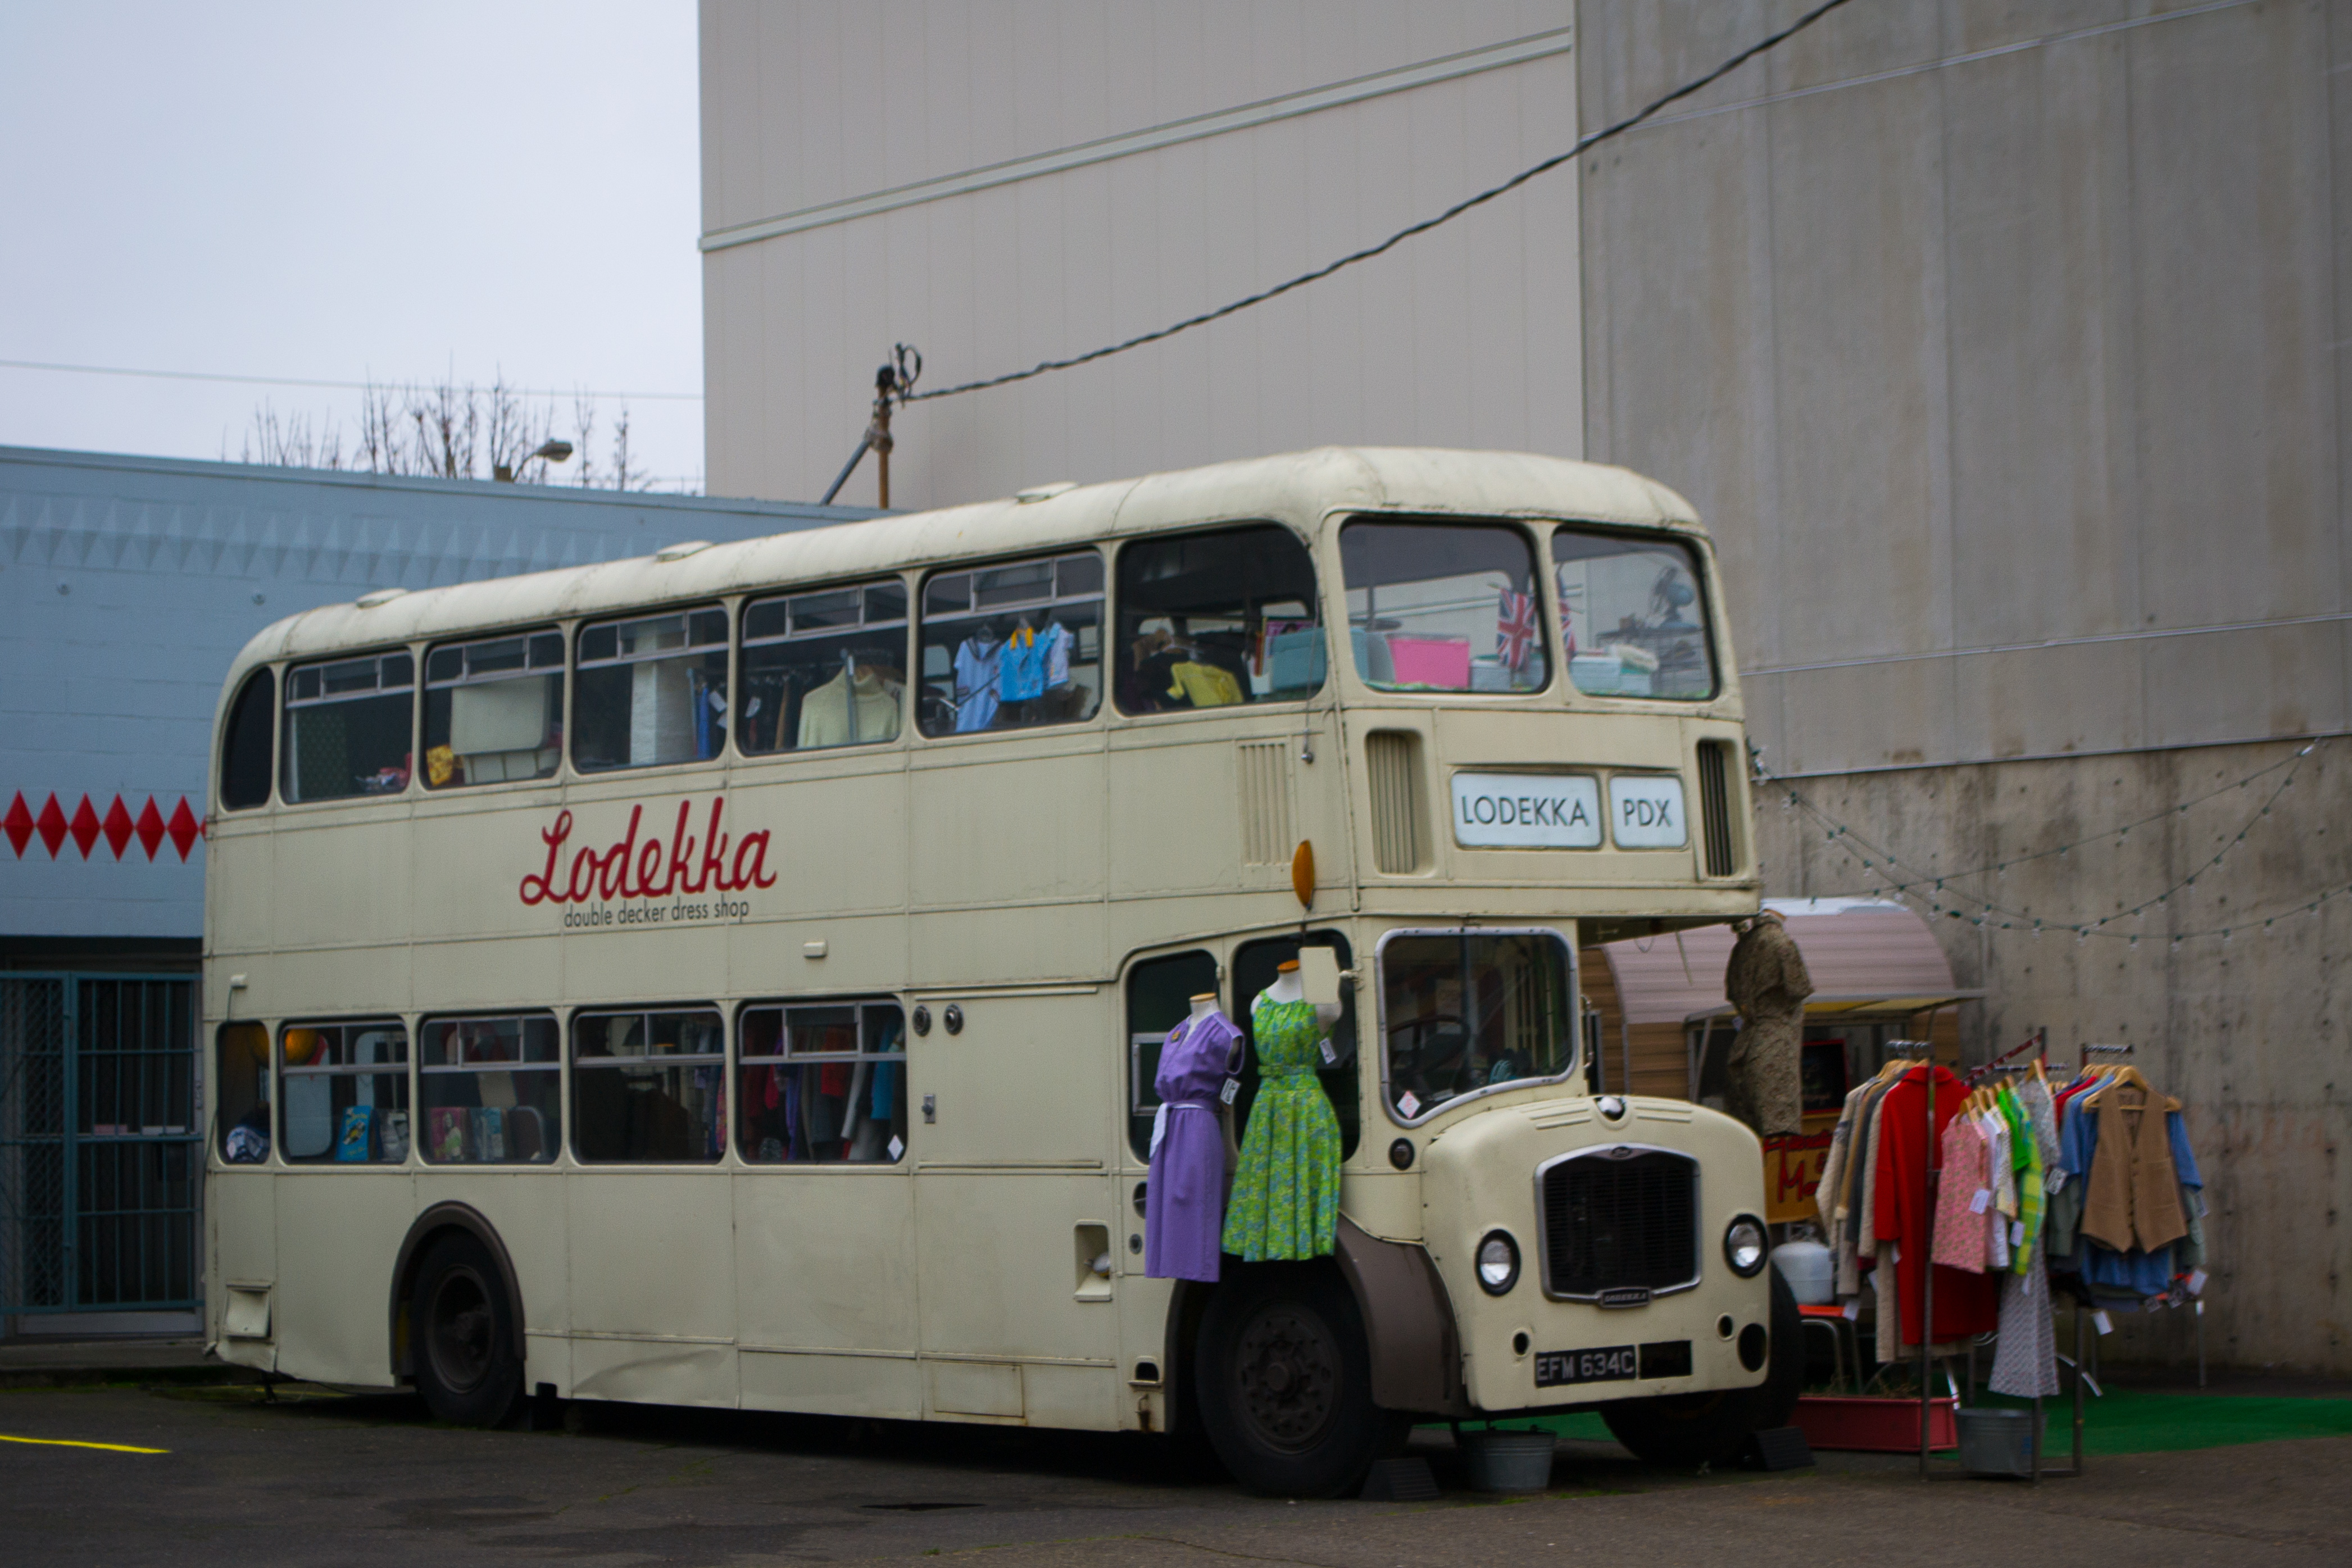 Bus Tours Of England Based In Bristol England